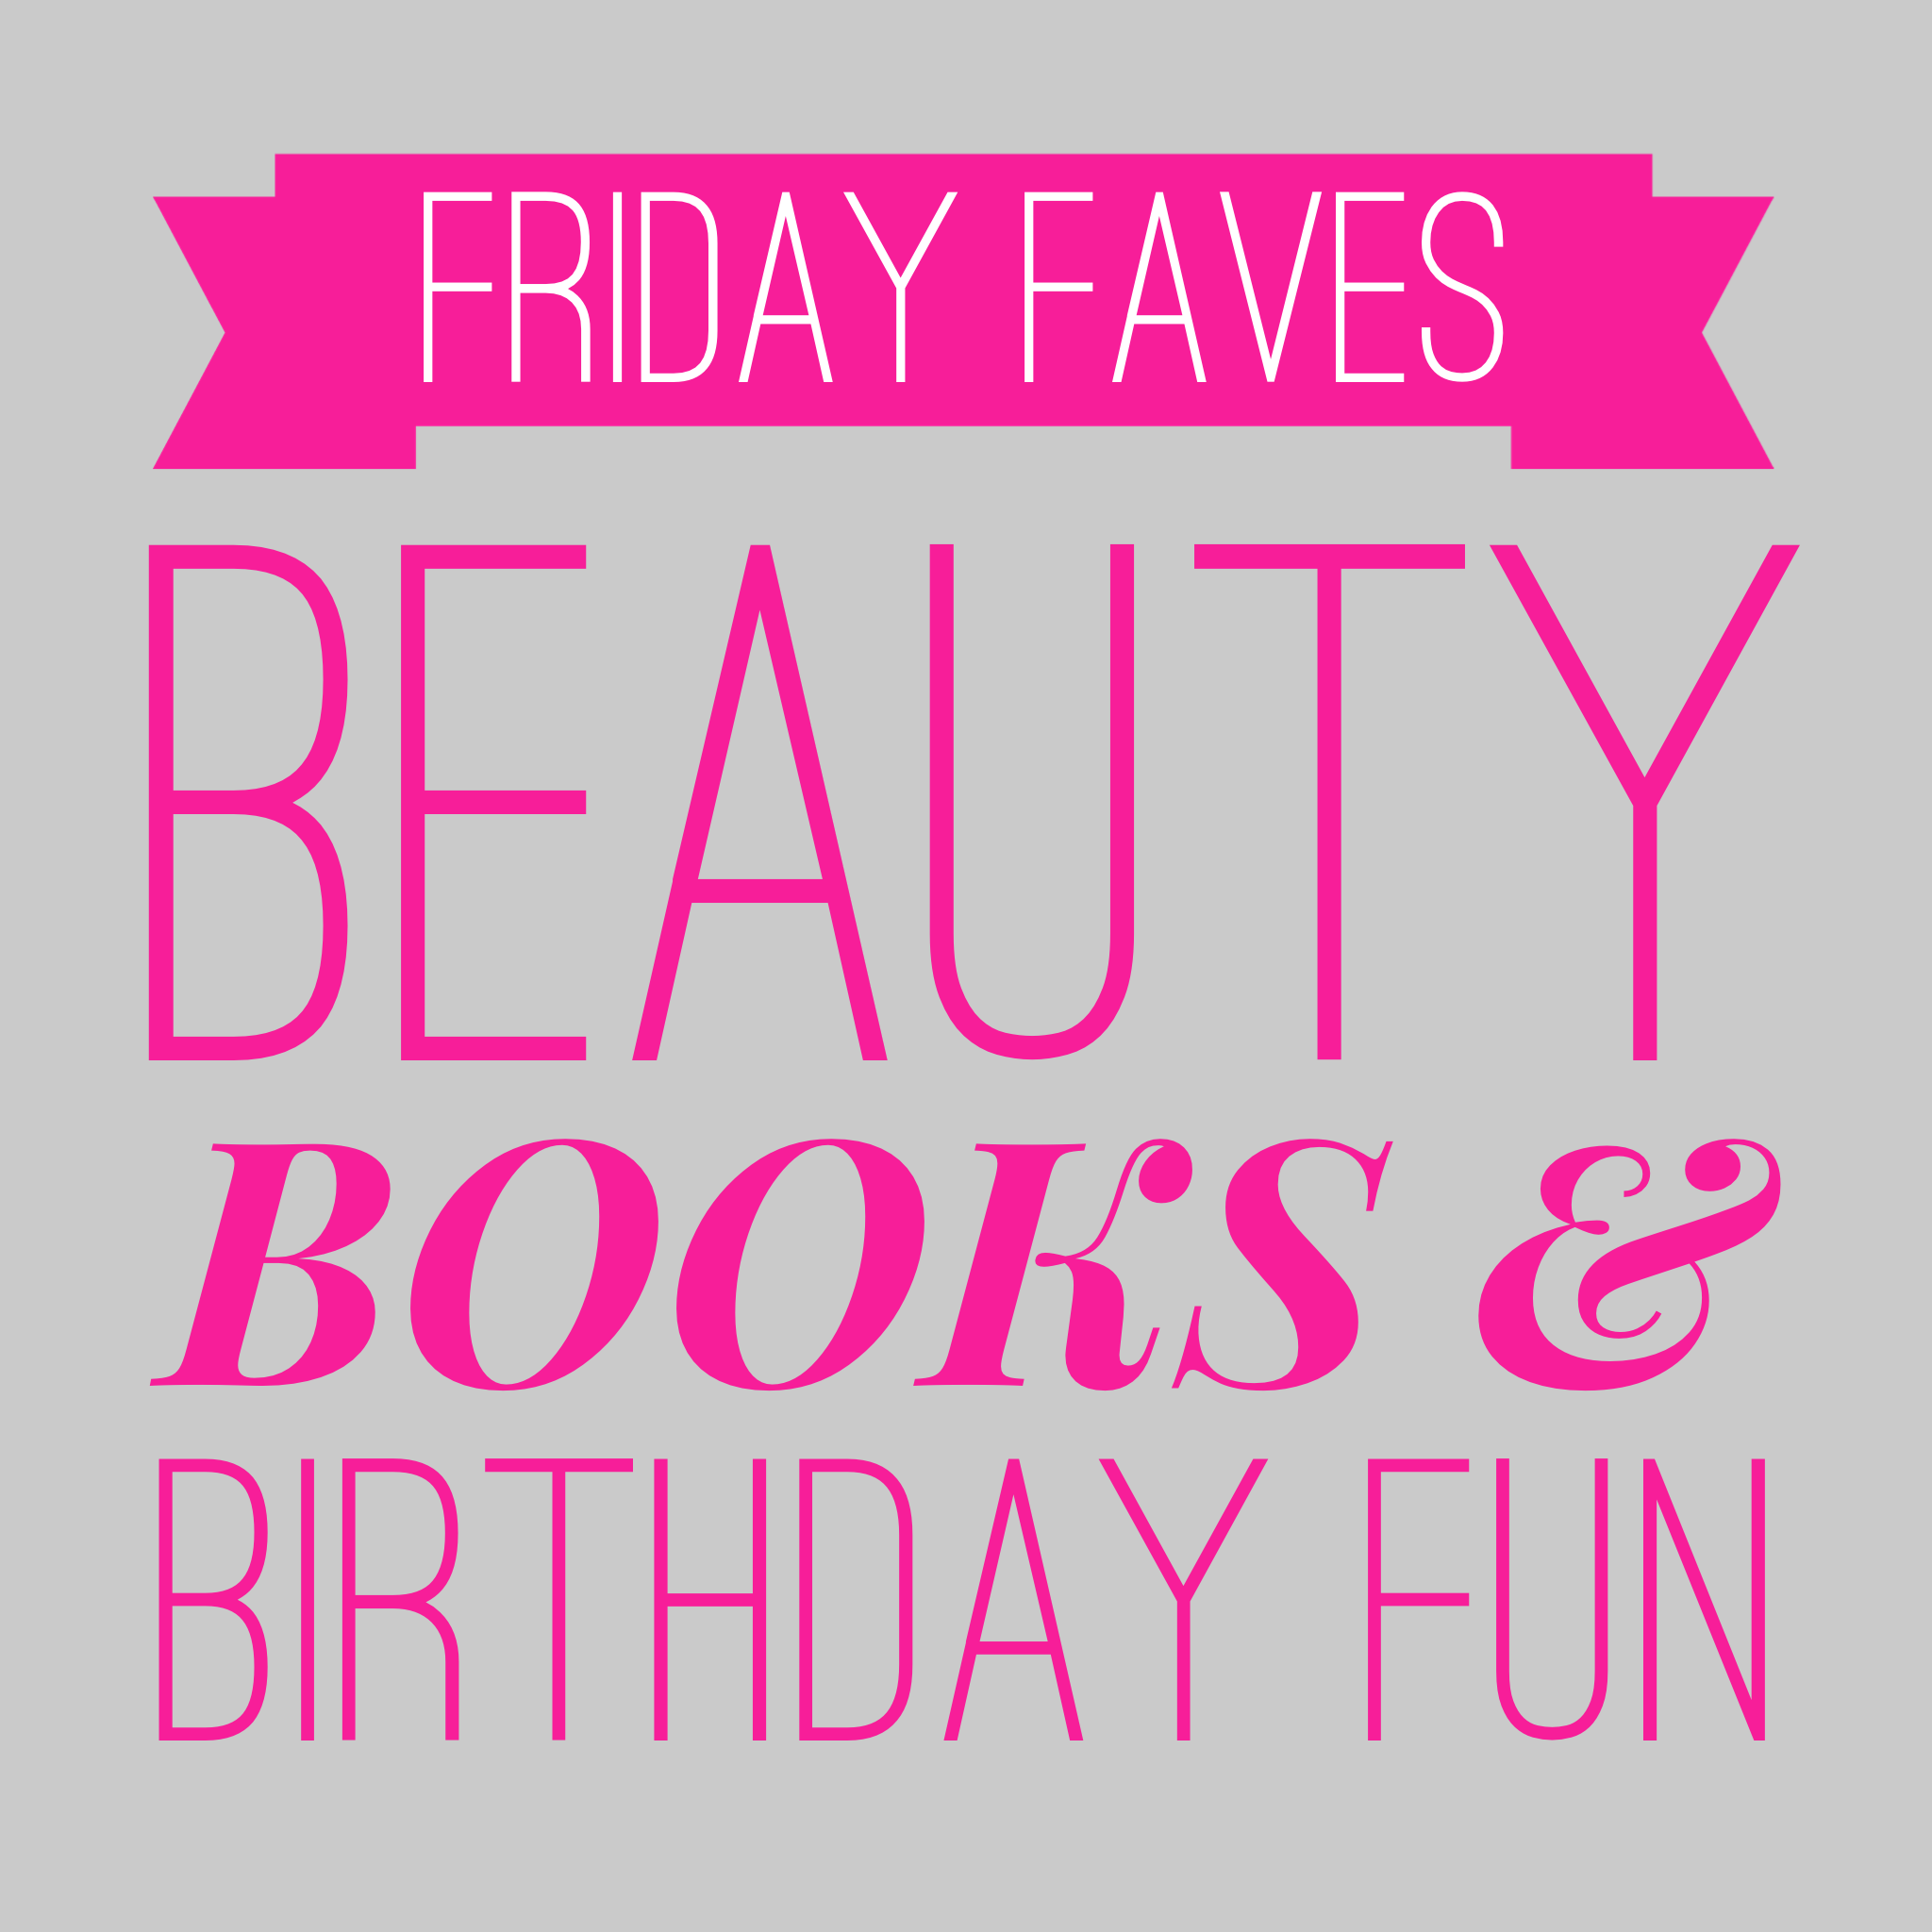 Friday Faves: Beauty, books and birthday fun!